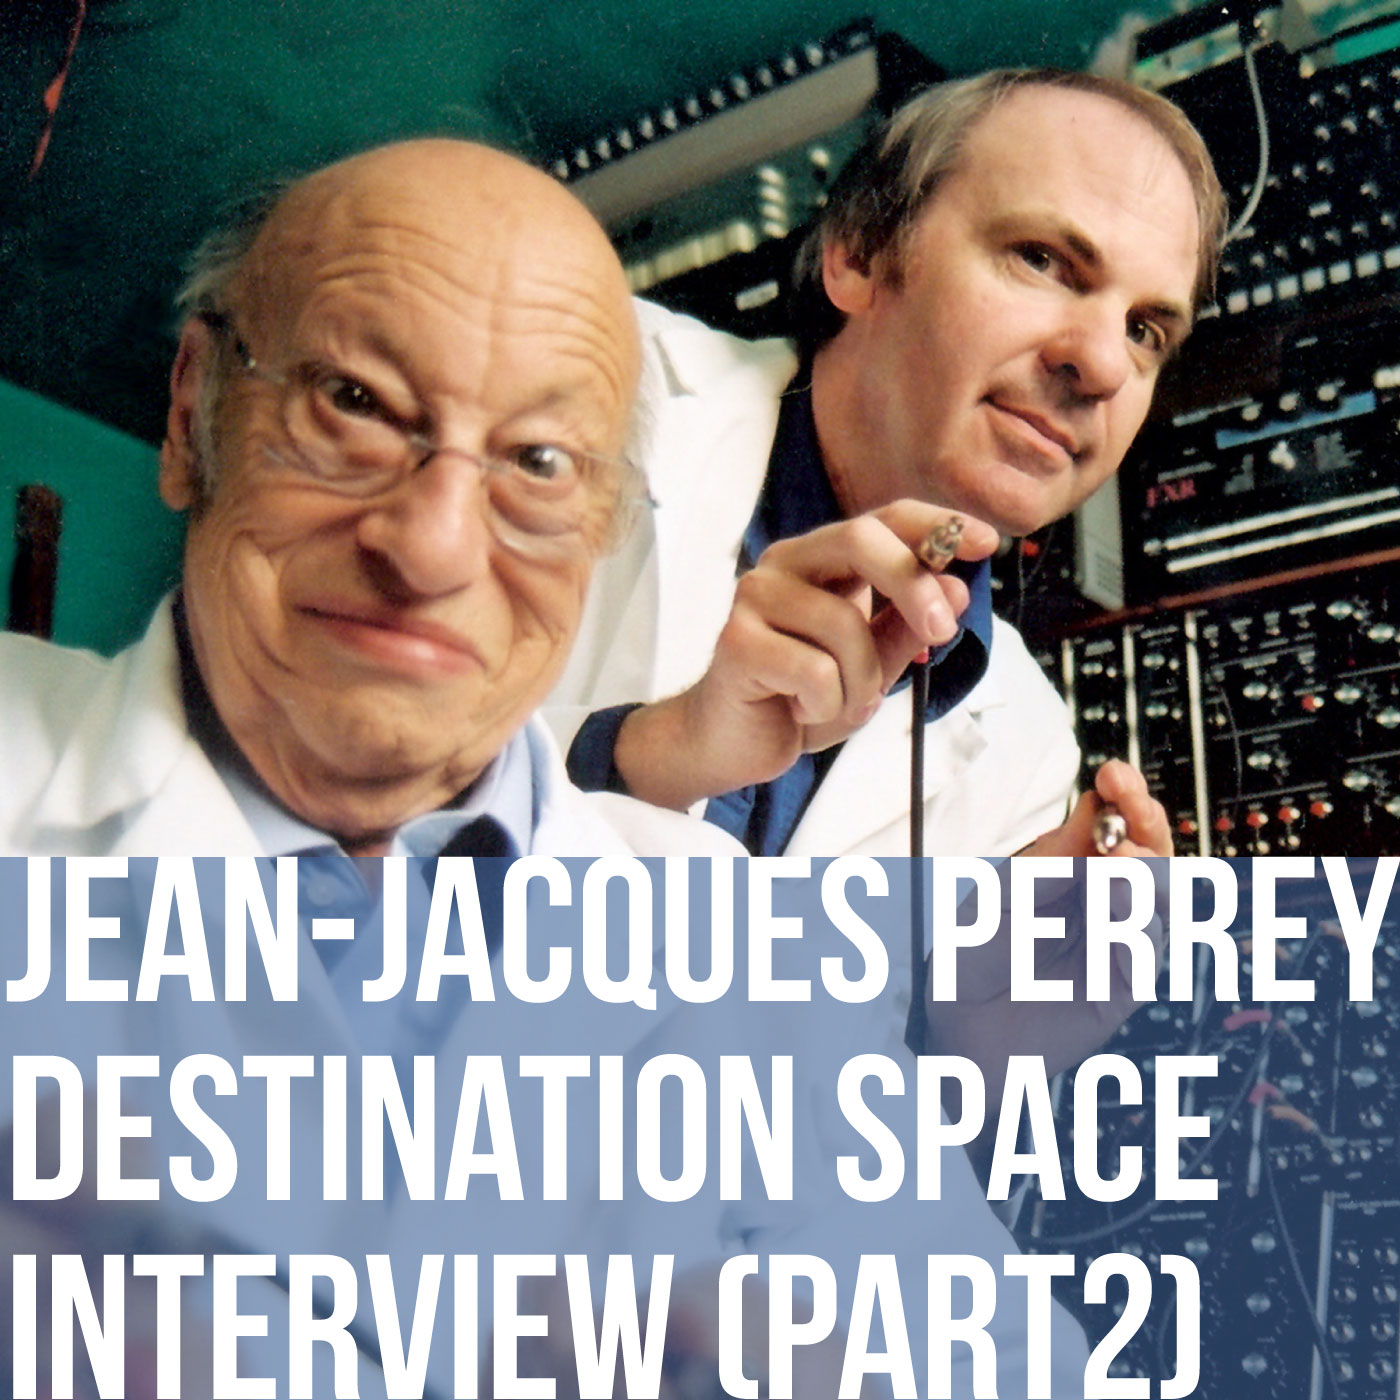 Jean-Jacques Perrey Destination Space interview - part 2